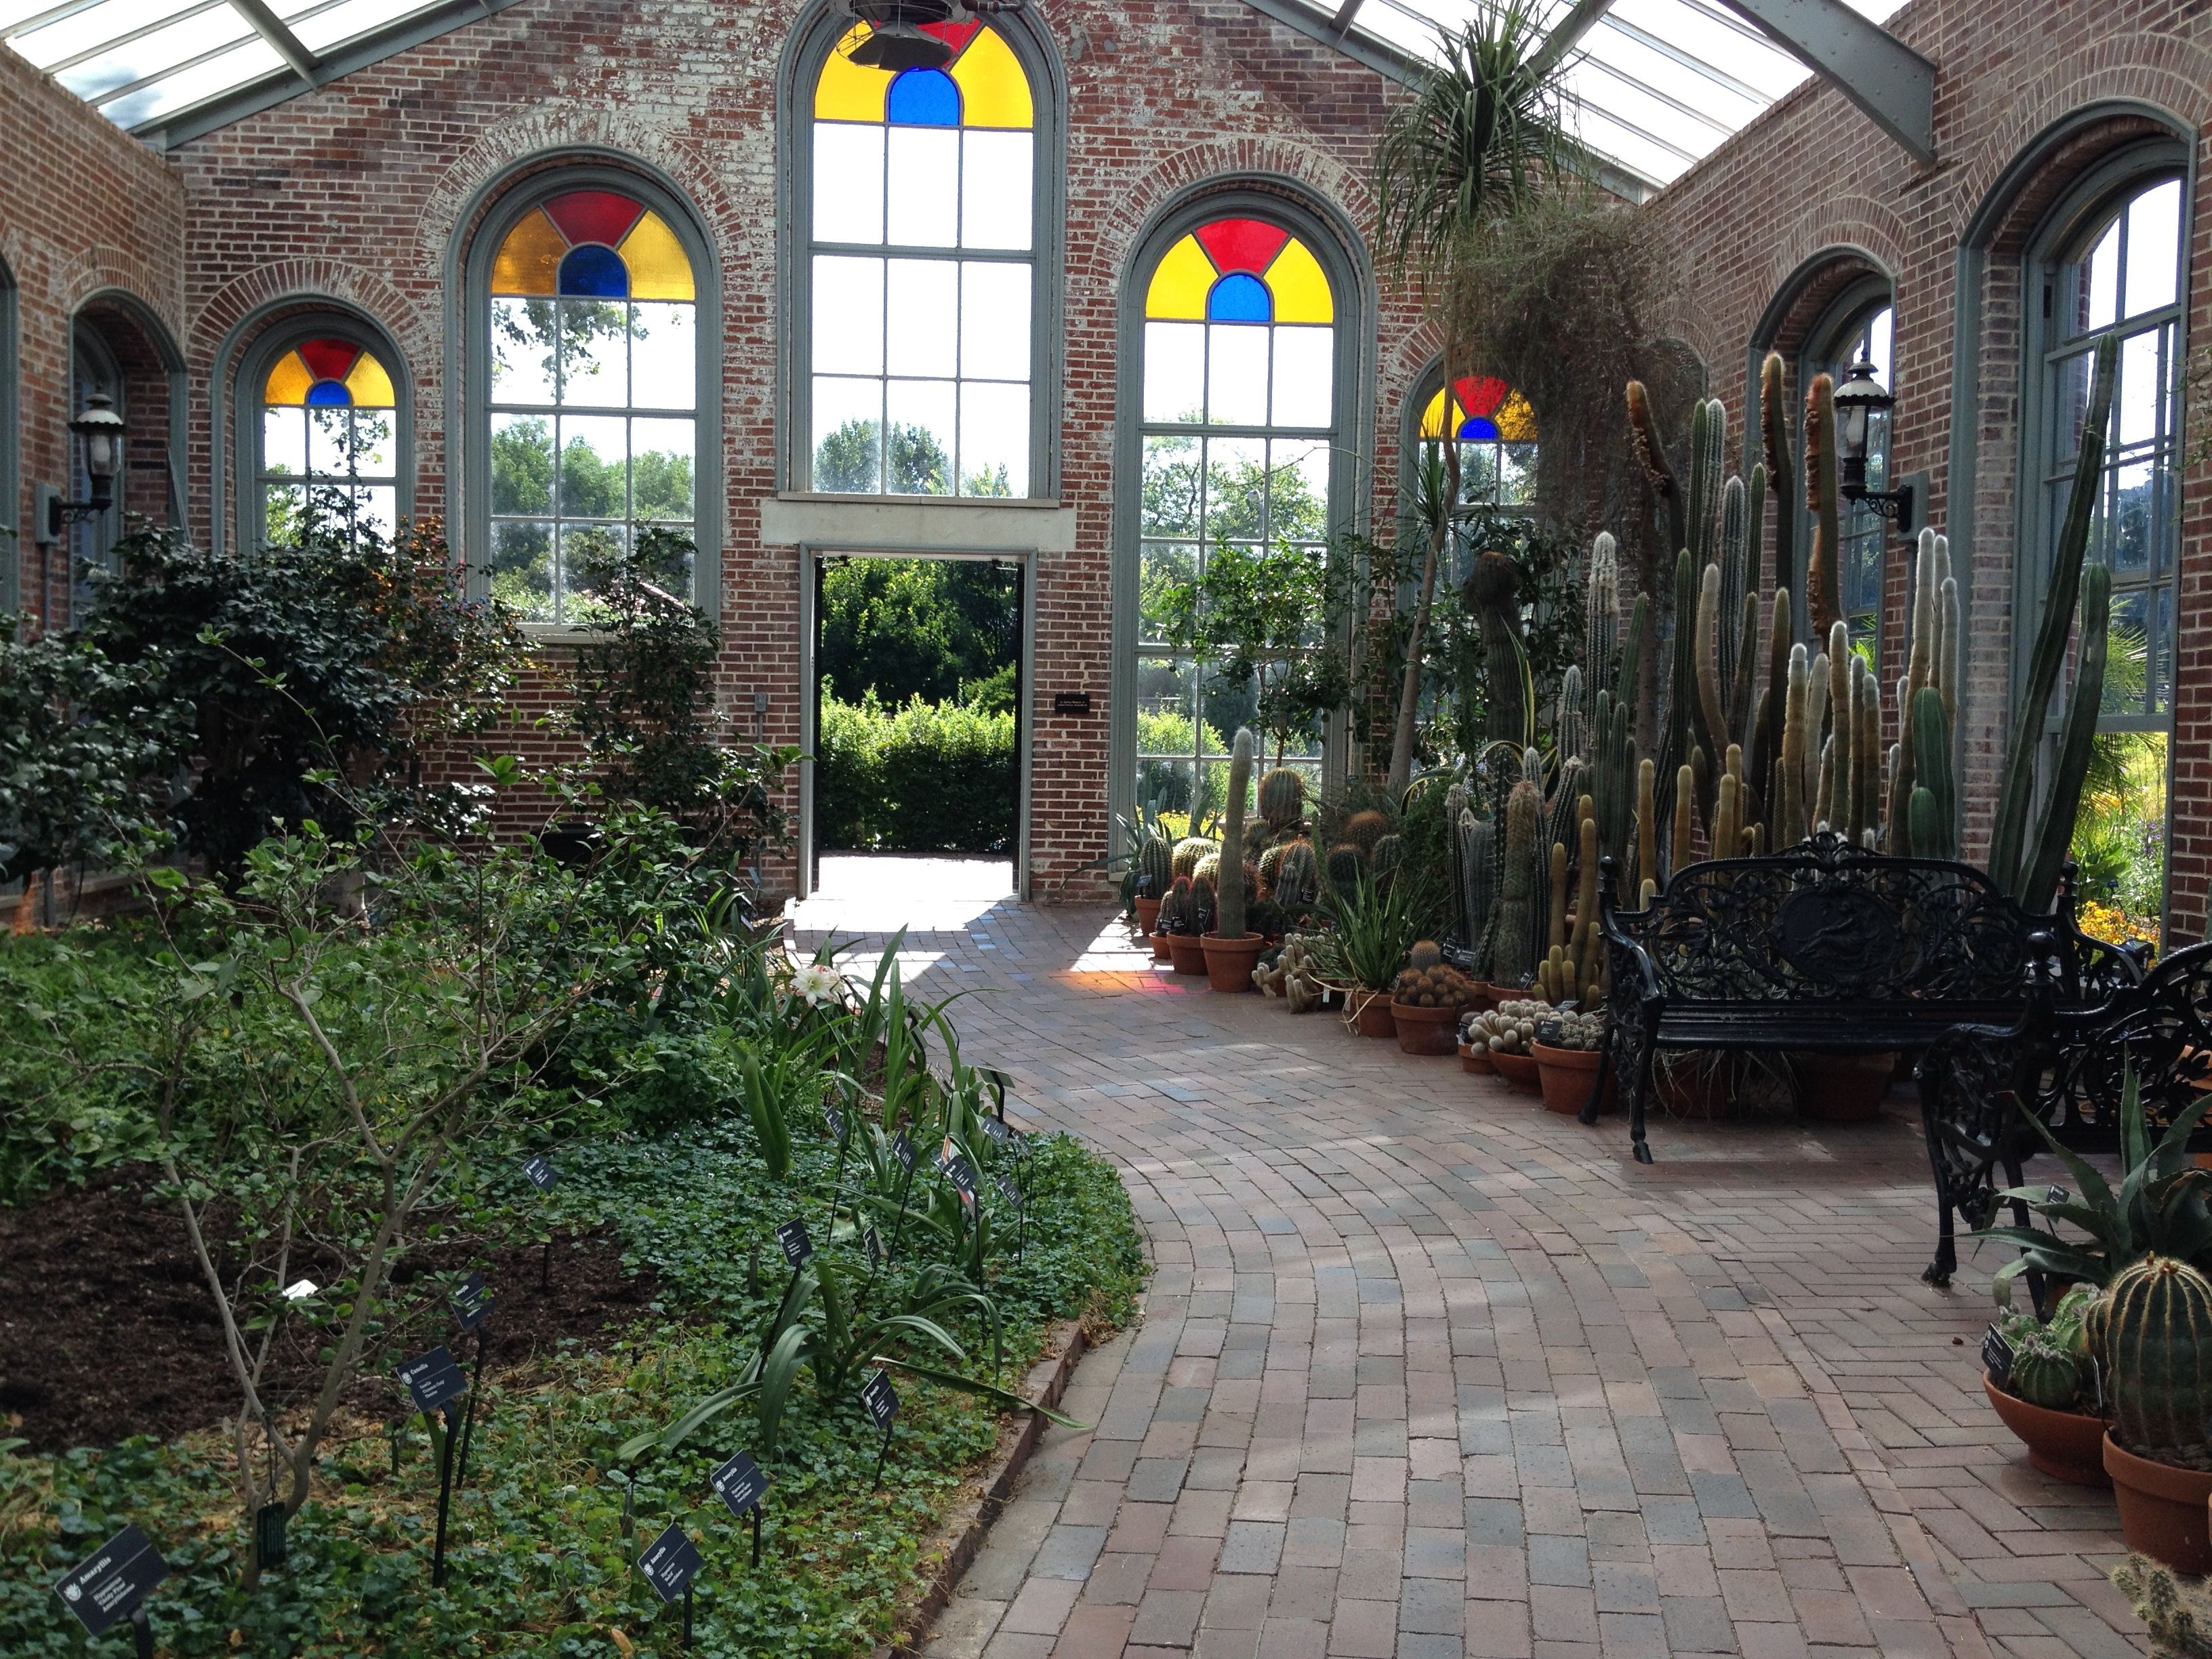 Top Things to See and Do at the Missouri Botanical Garden